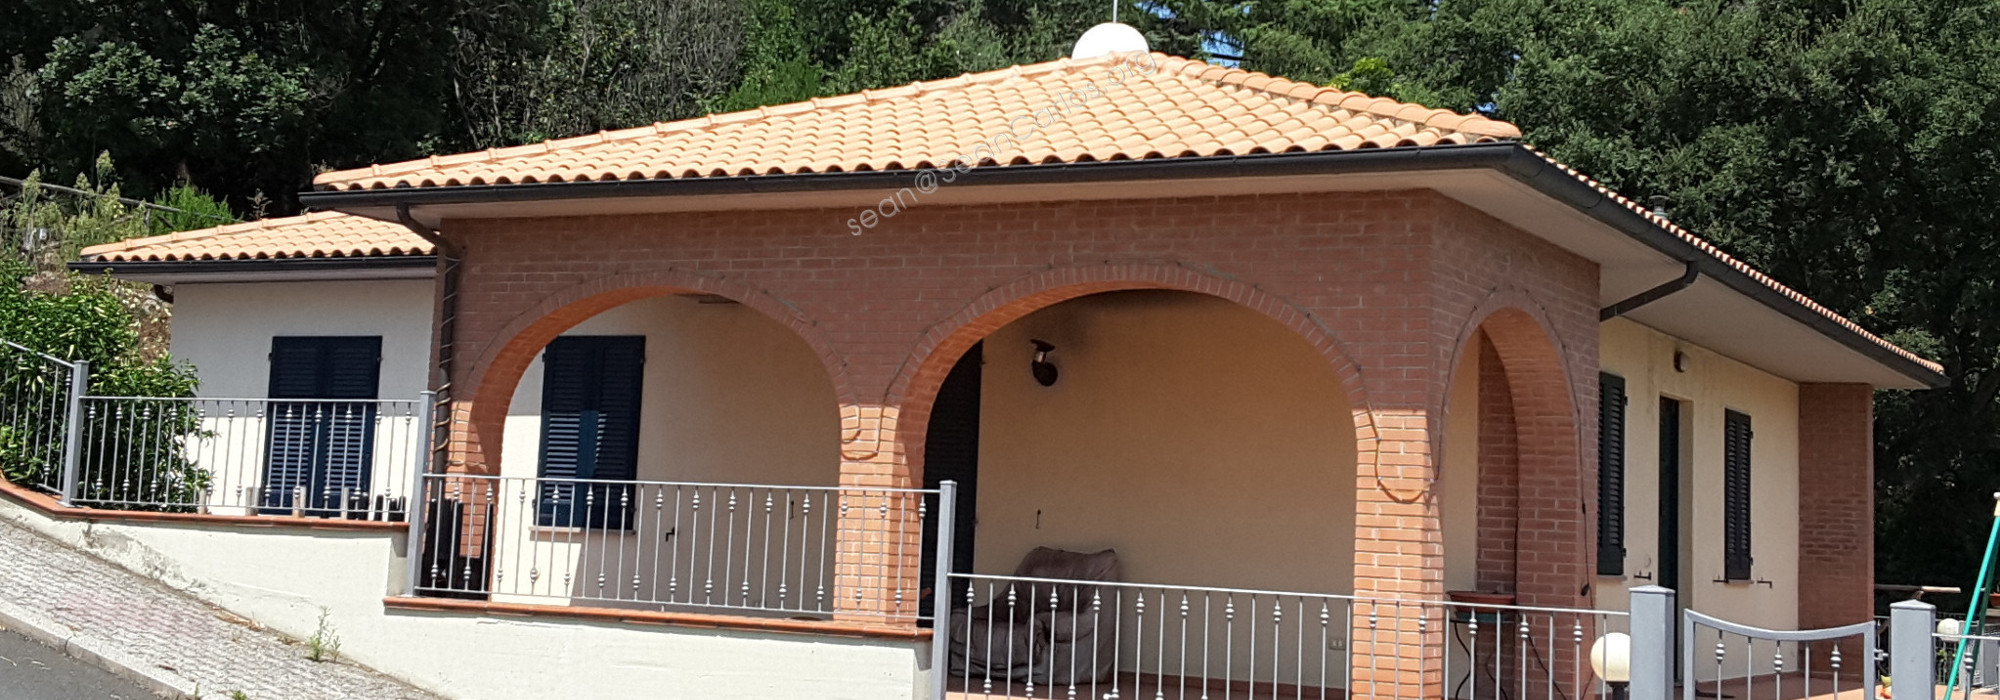 Single family detached home with garden, near medieval town Suvereto